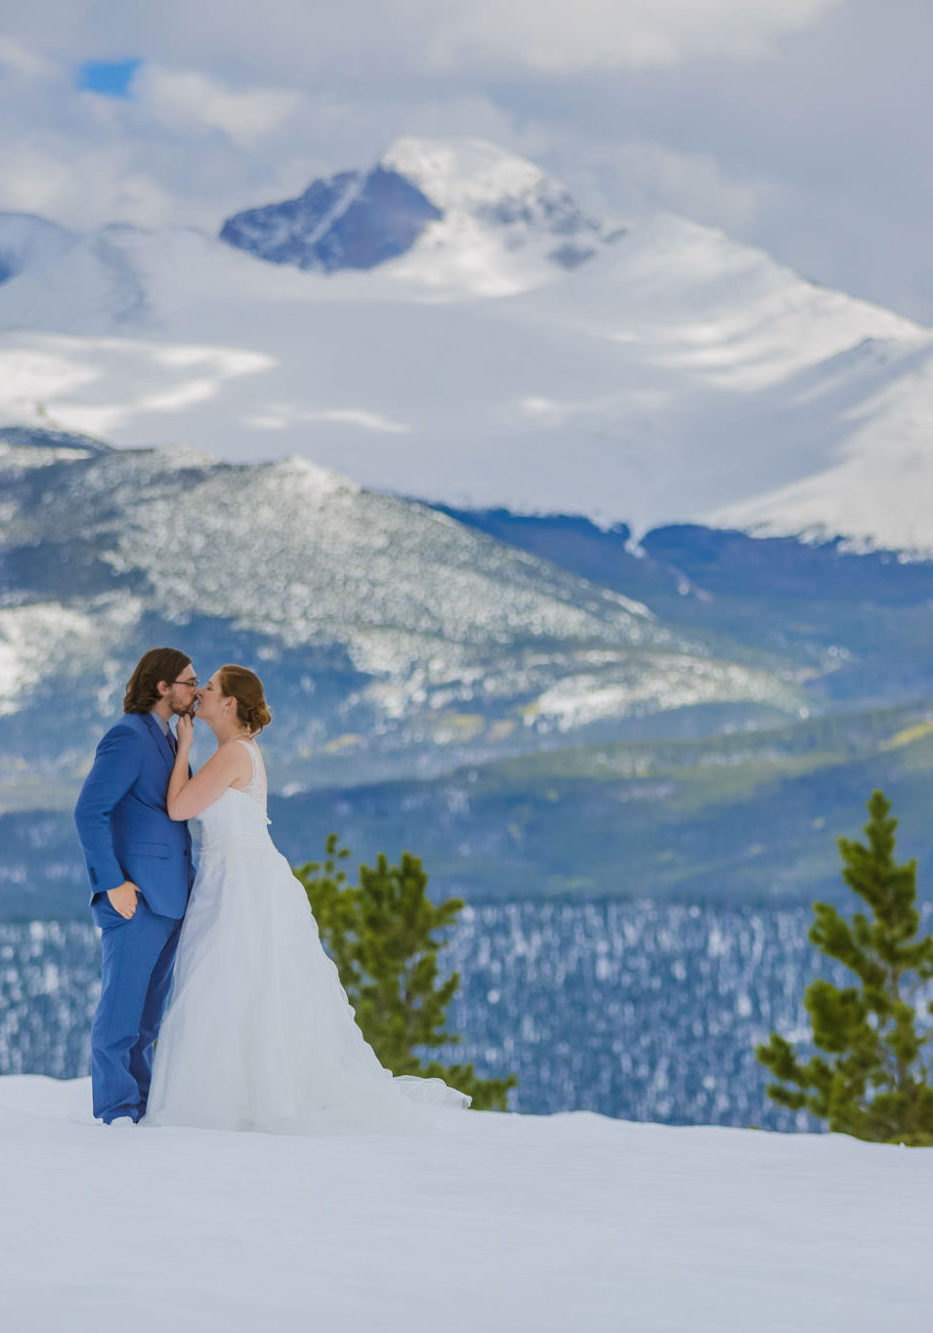 A Snowy Winter Elopement in Rocky Mountain National Park